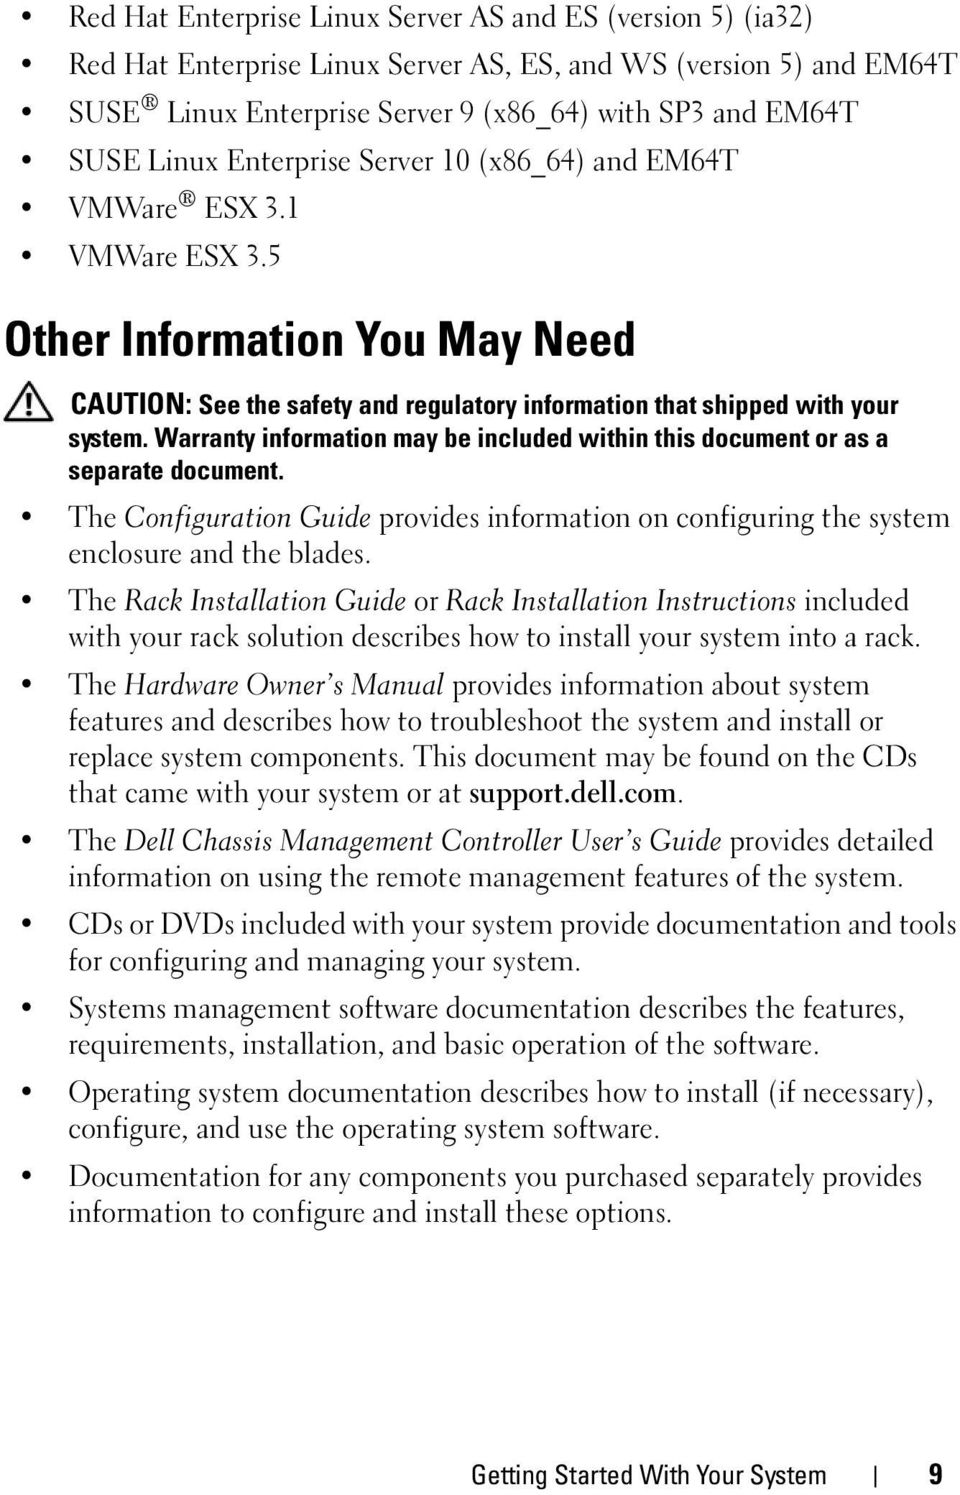 Warranty information may be included within this document or as a separate document. The Configuration Guide provides information on configuring the system enclosure and the blades.